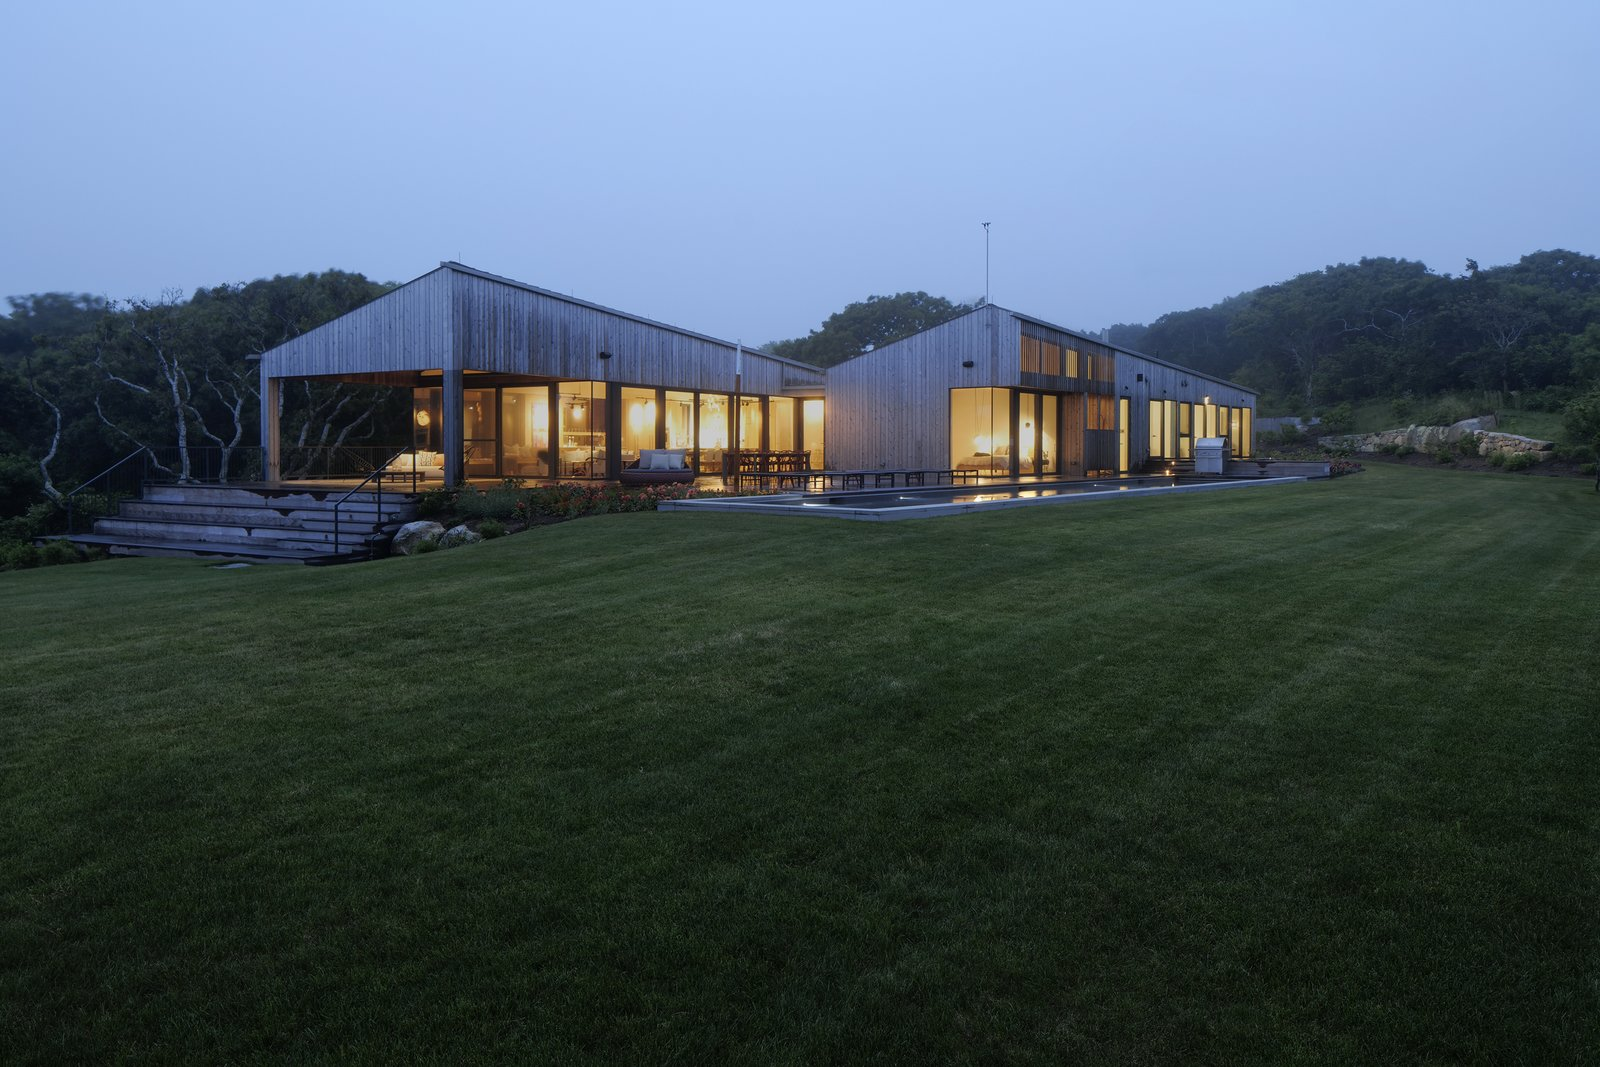 Two Cedar-Clad Sheds Make Up This Summer Retreat on Martha's Vineyard